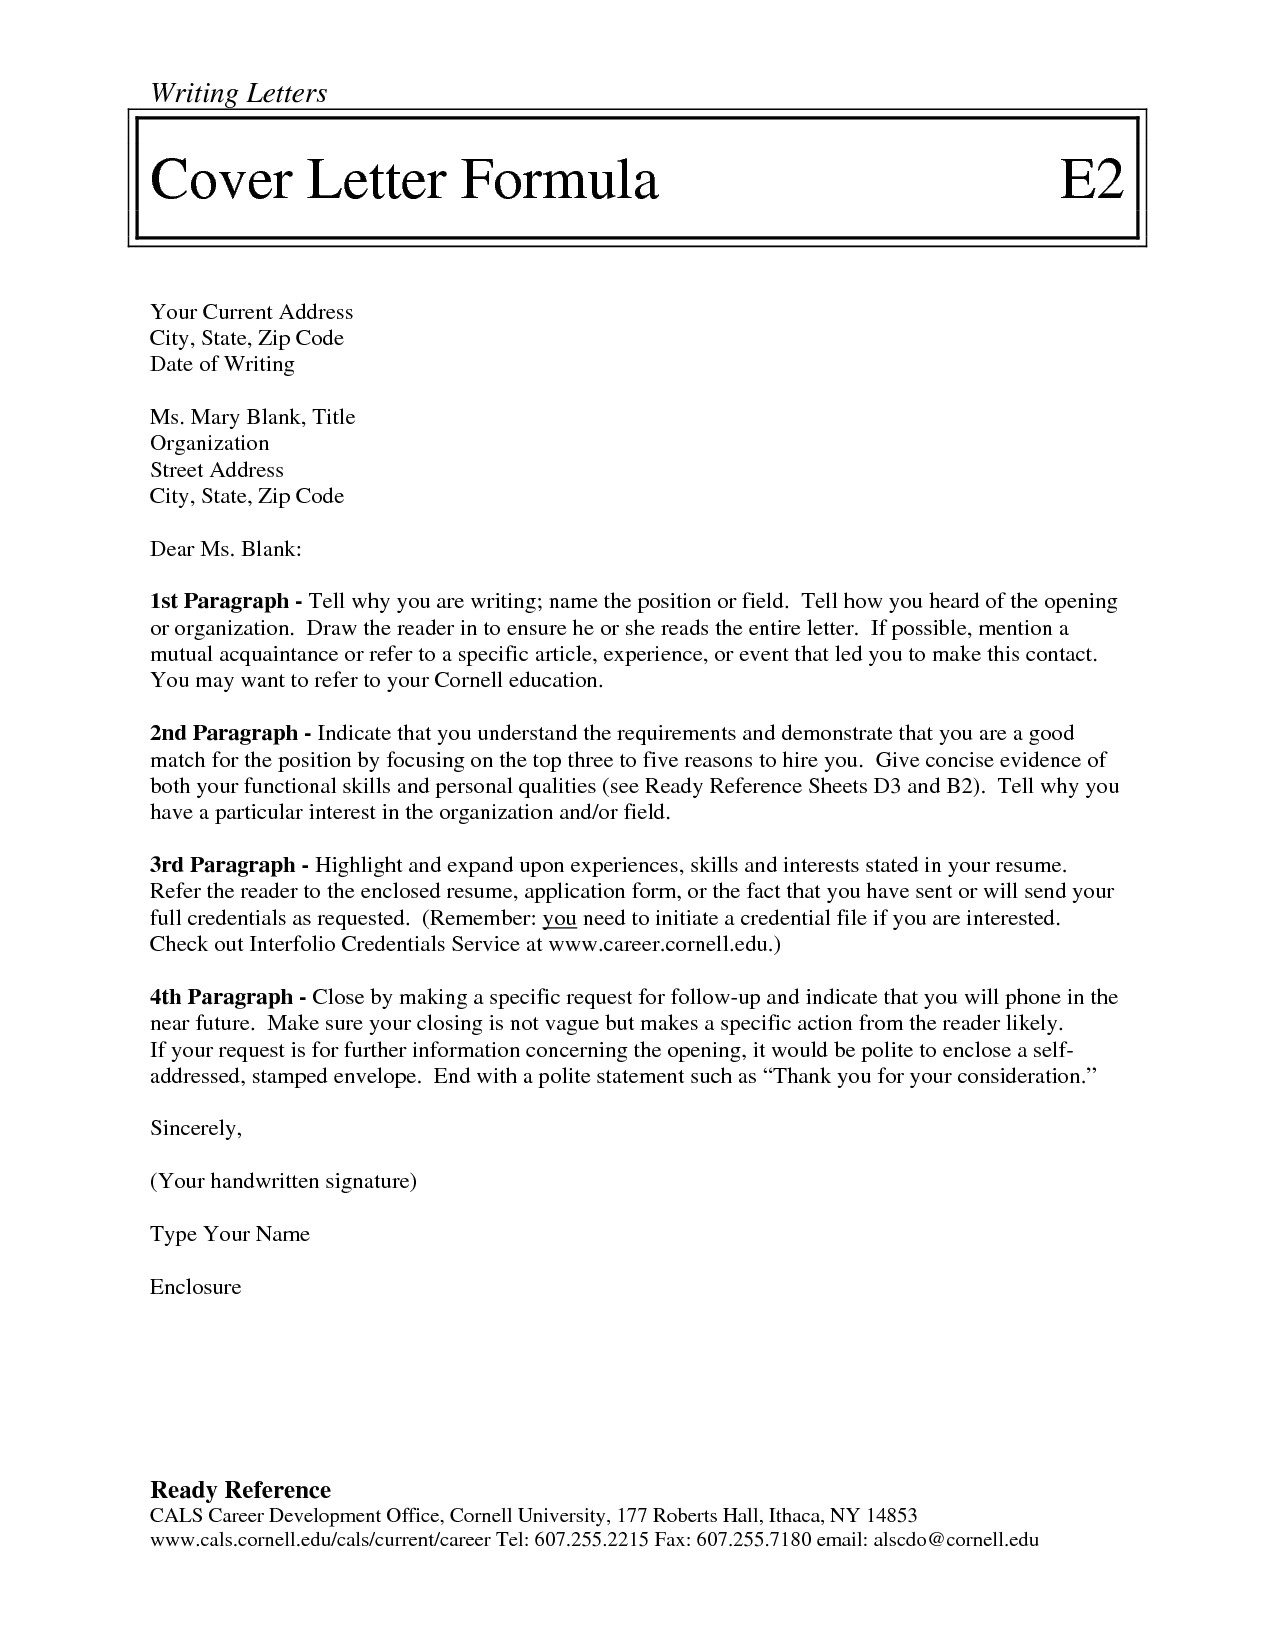 Best Way to Address A Cover Letter Addressing A Professional Letter Letters Free Sample